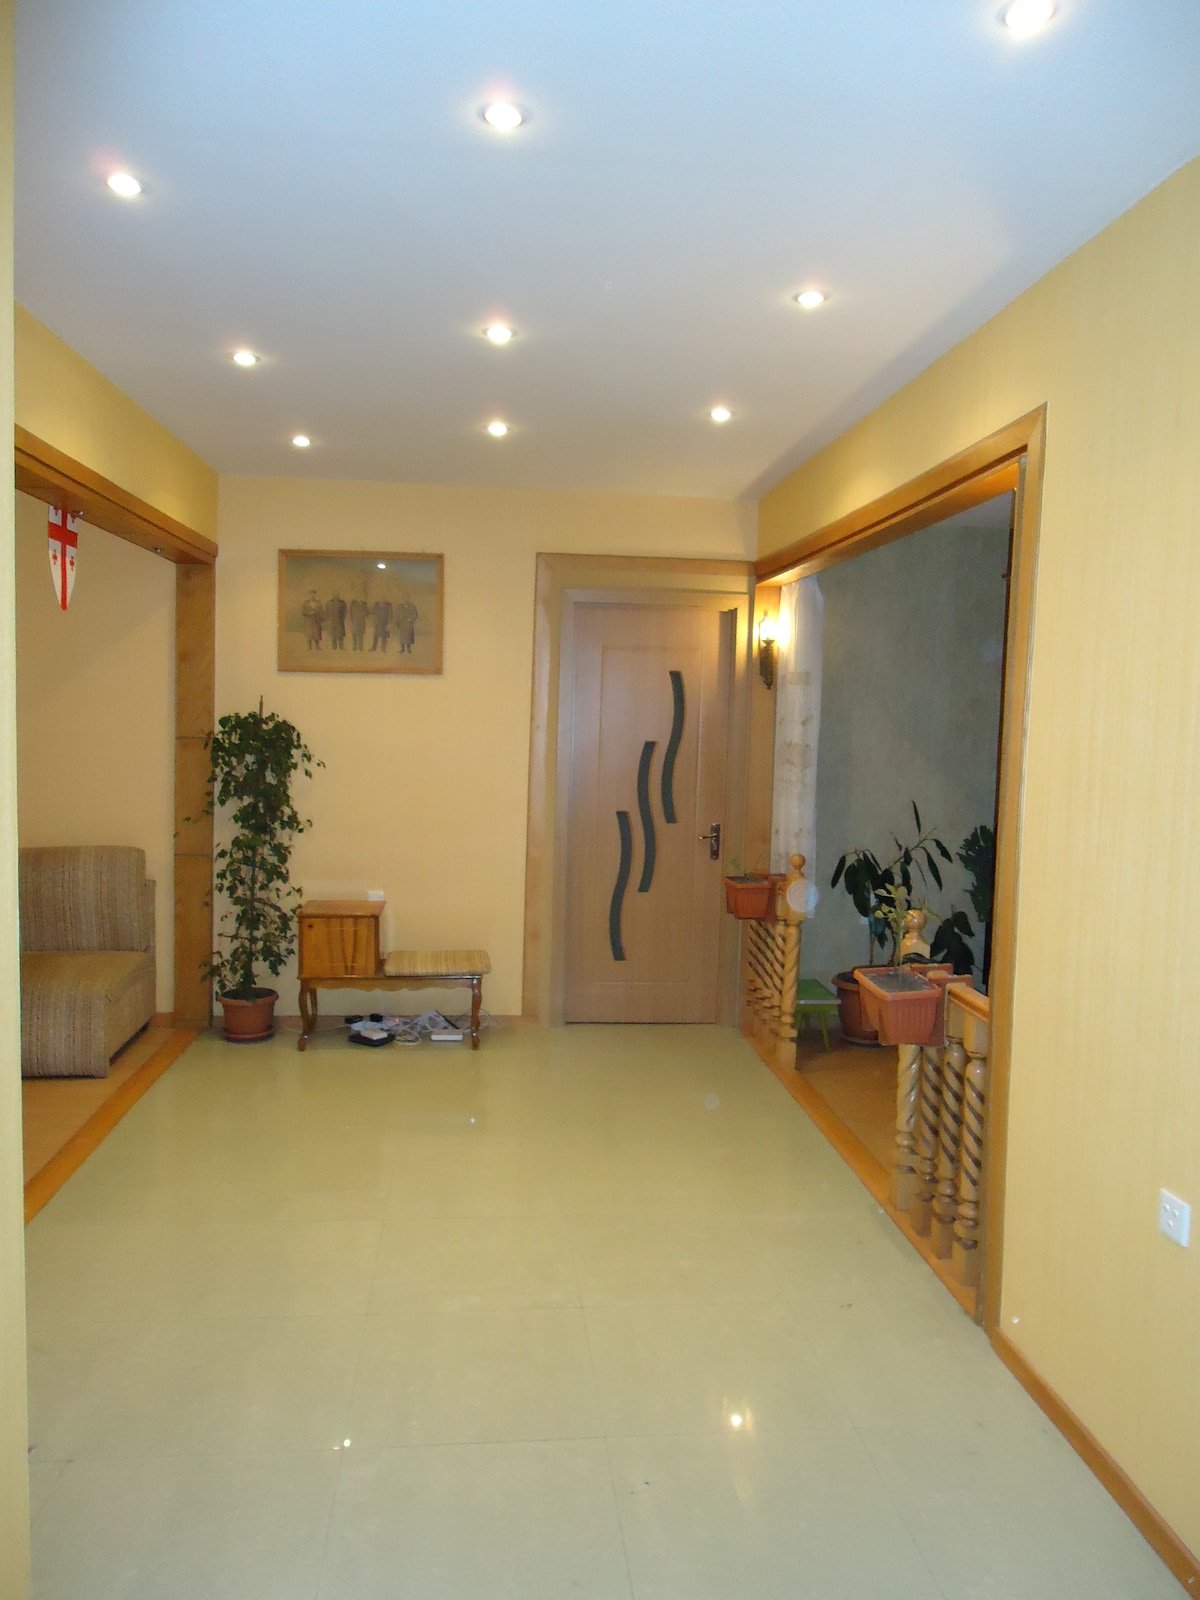 A large living room with kitchen area and bathroom.